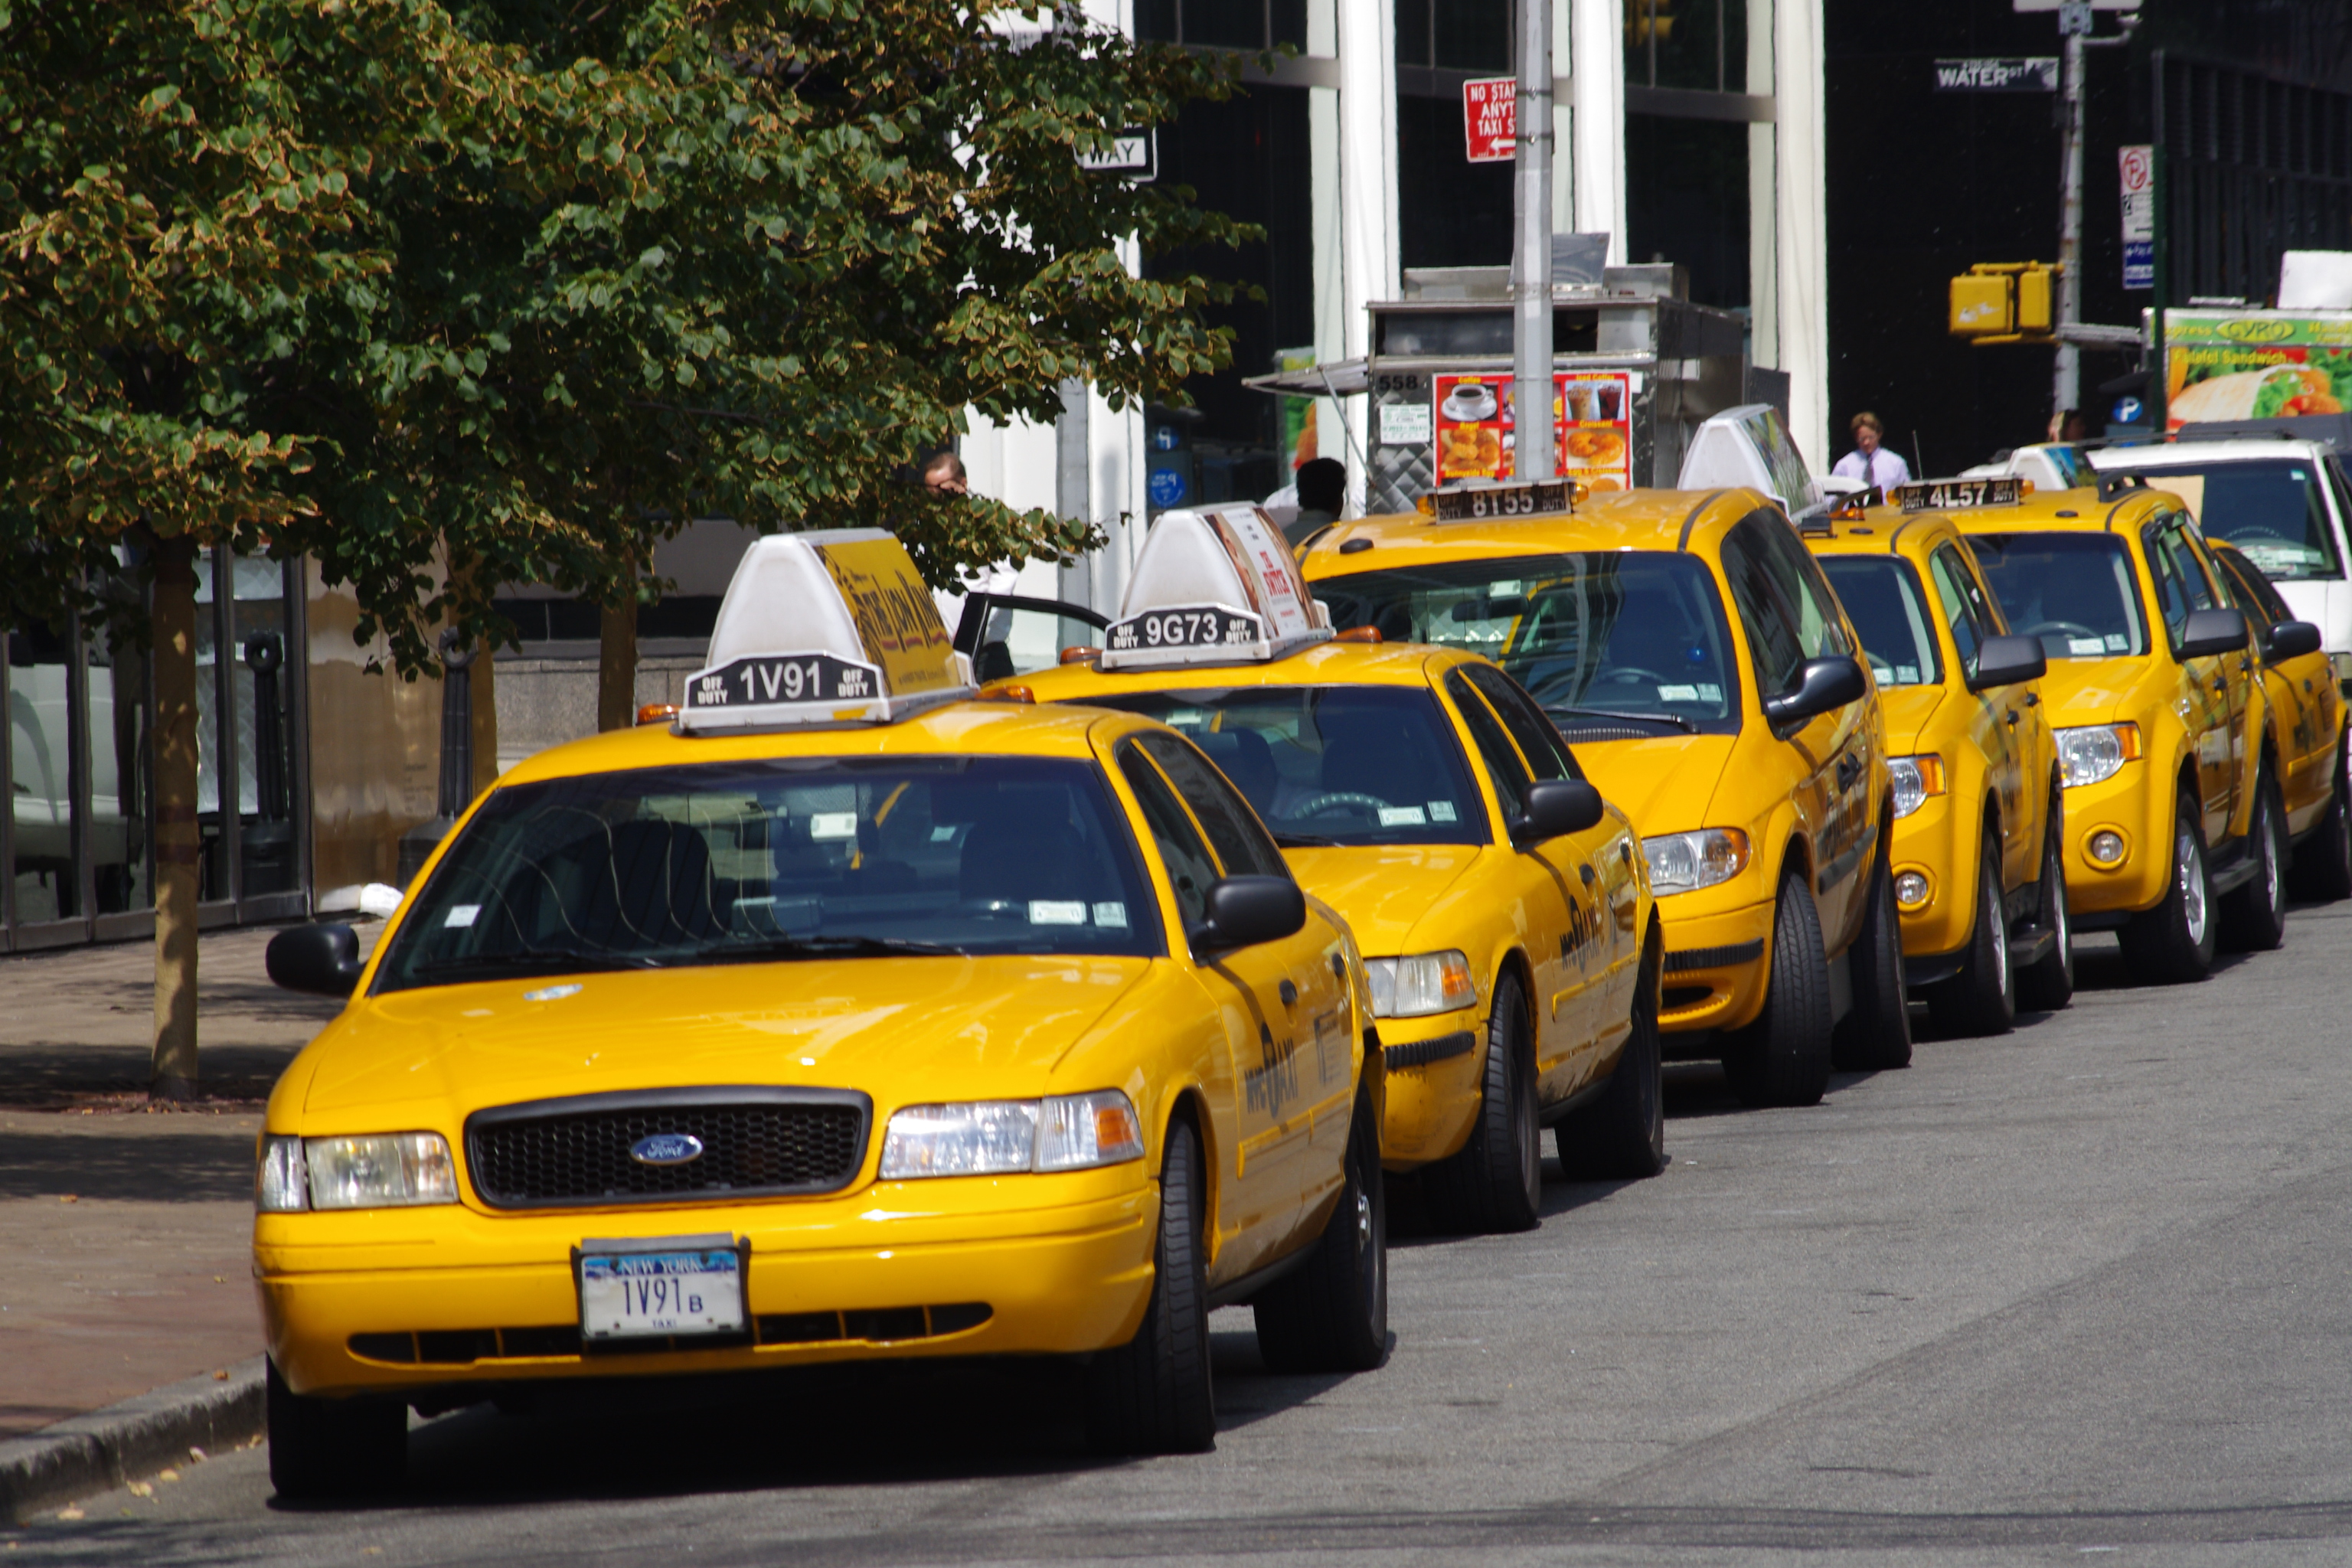 New York City Taxi | Top 10 Tips for Buying Apartments in New York City